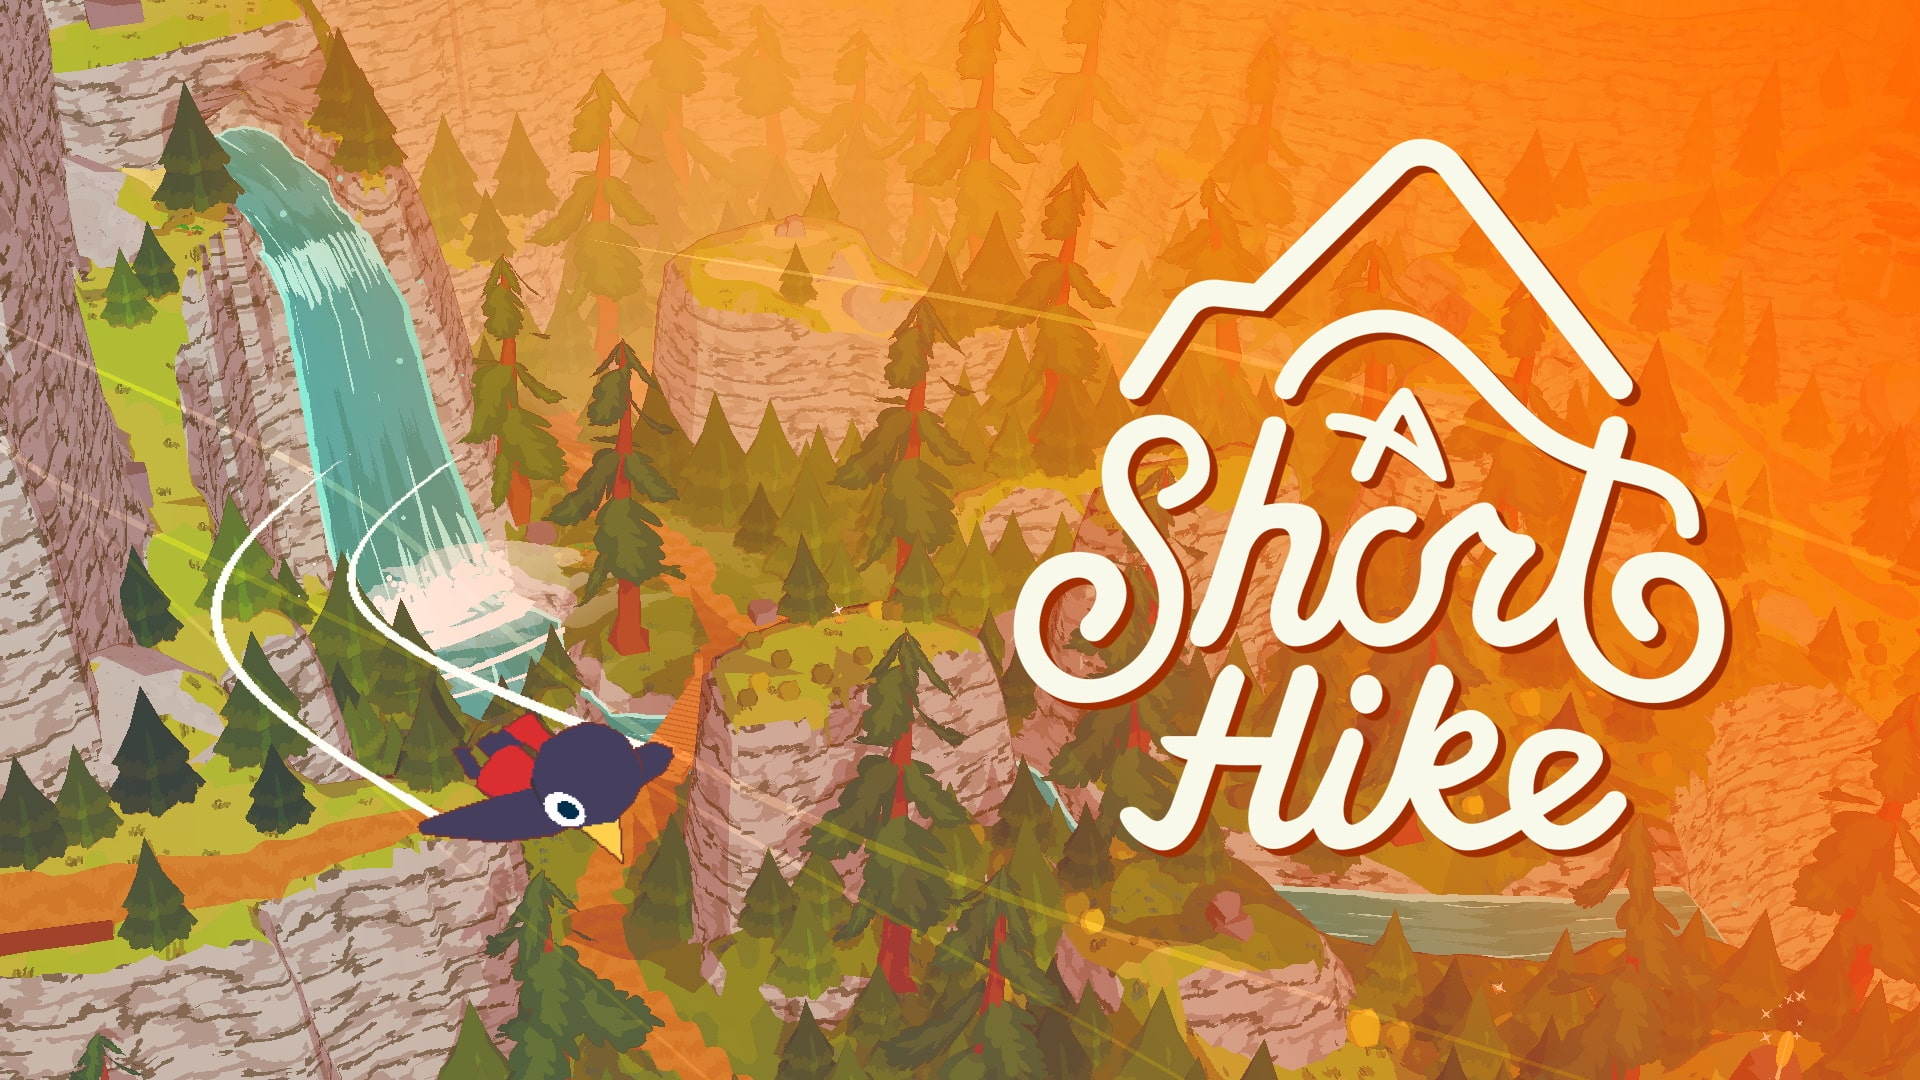 'A Short Hike' reflects my neurodivergence in a way that feels safe